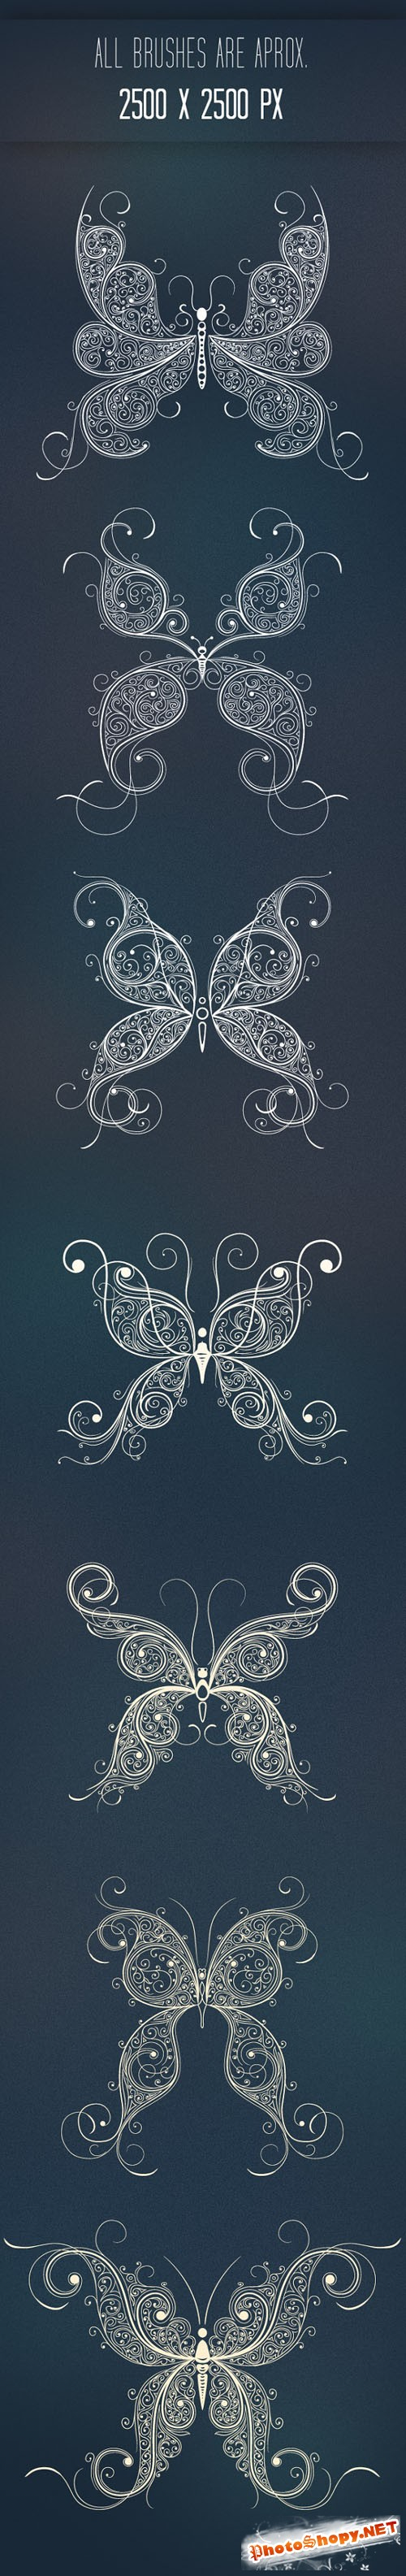 Butterflies Abstract Photoshop ABR Brushes